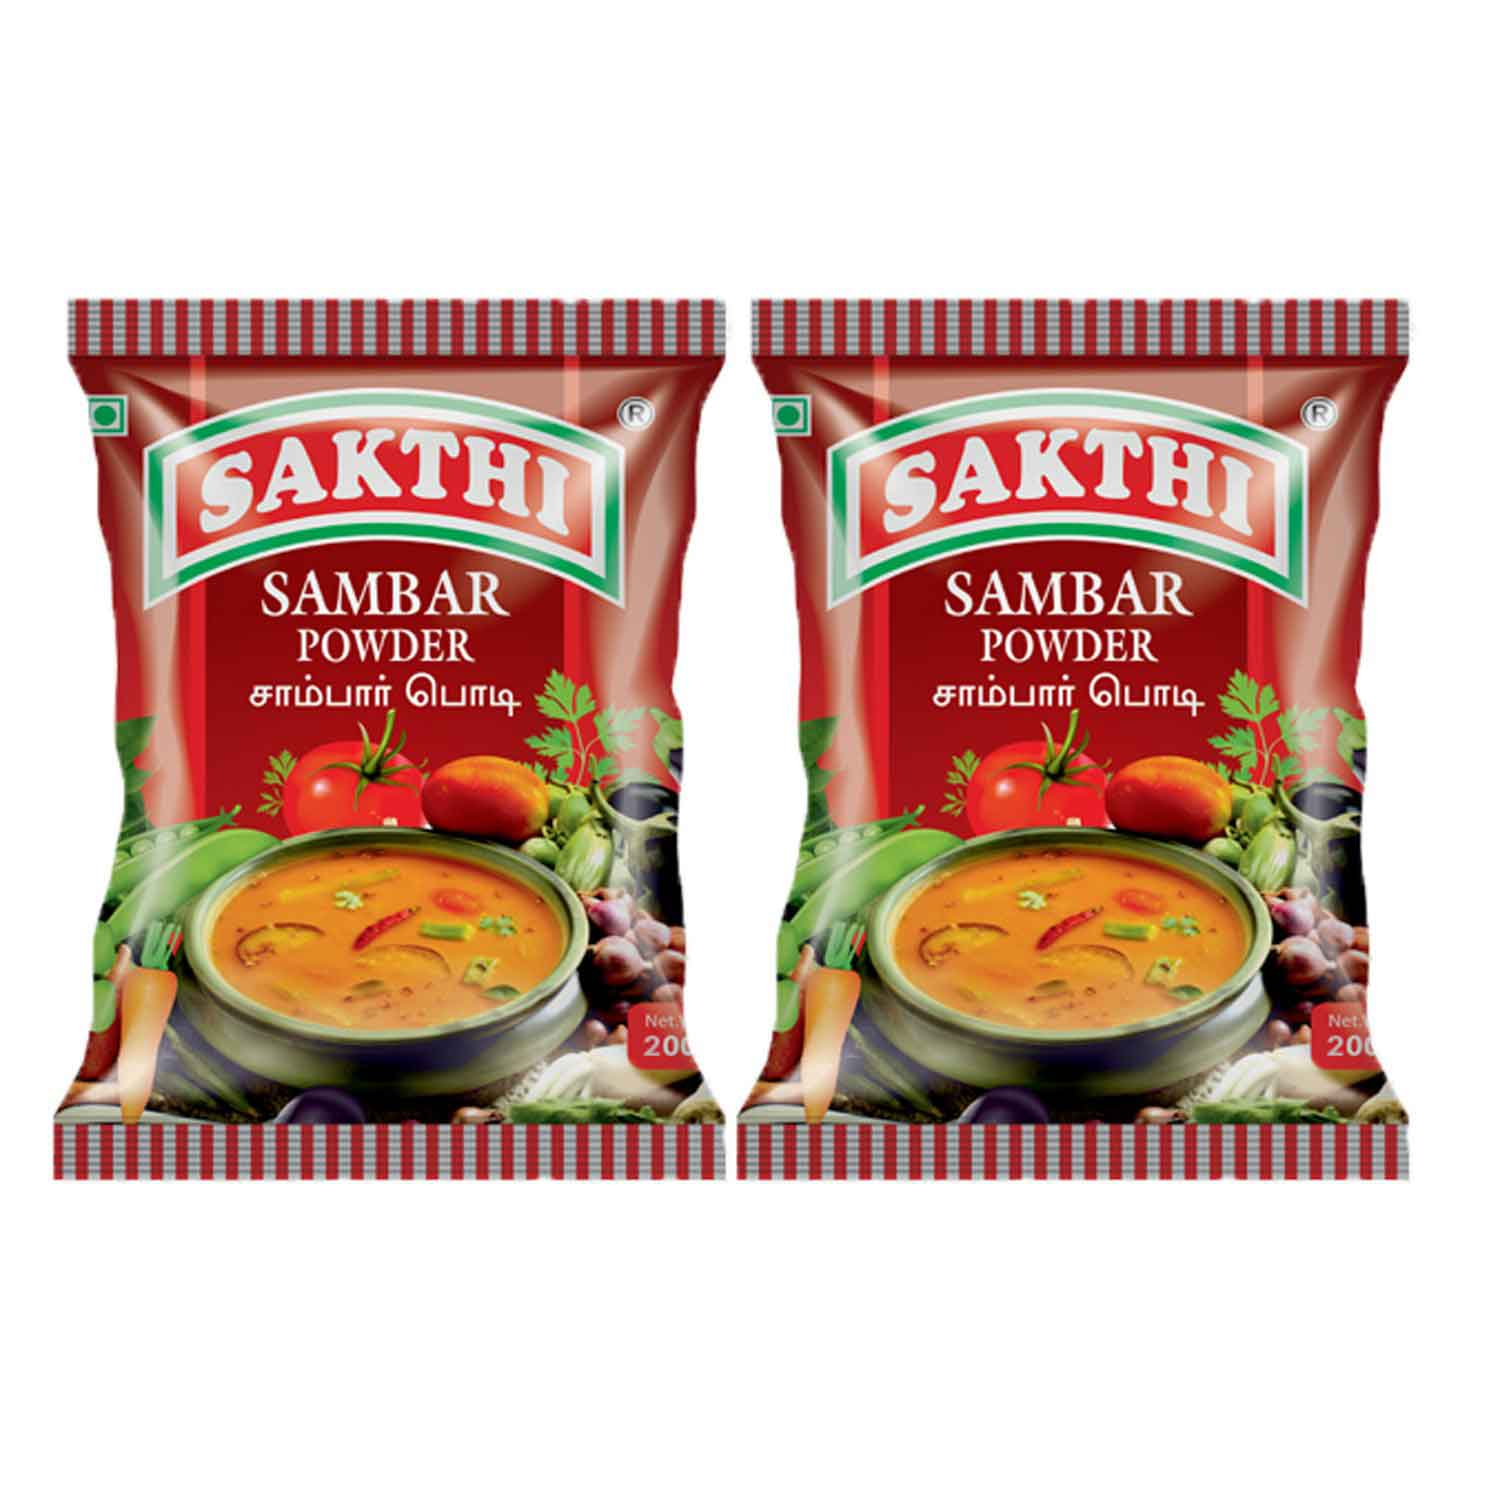 Sakthi Sambar Powder 200gm Pack of 2